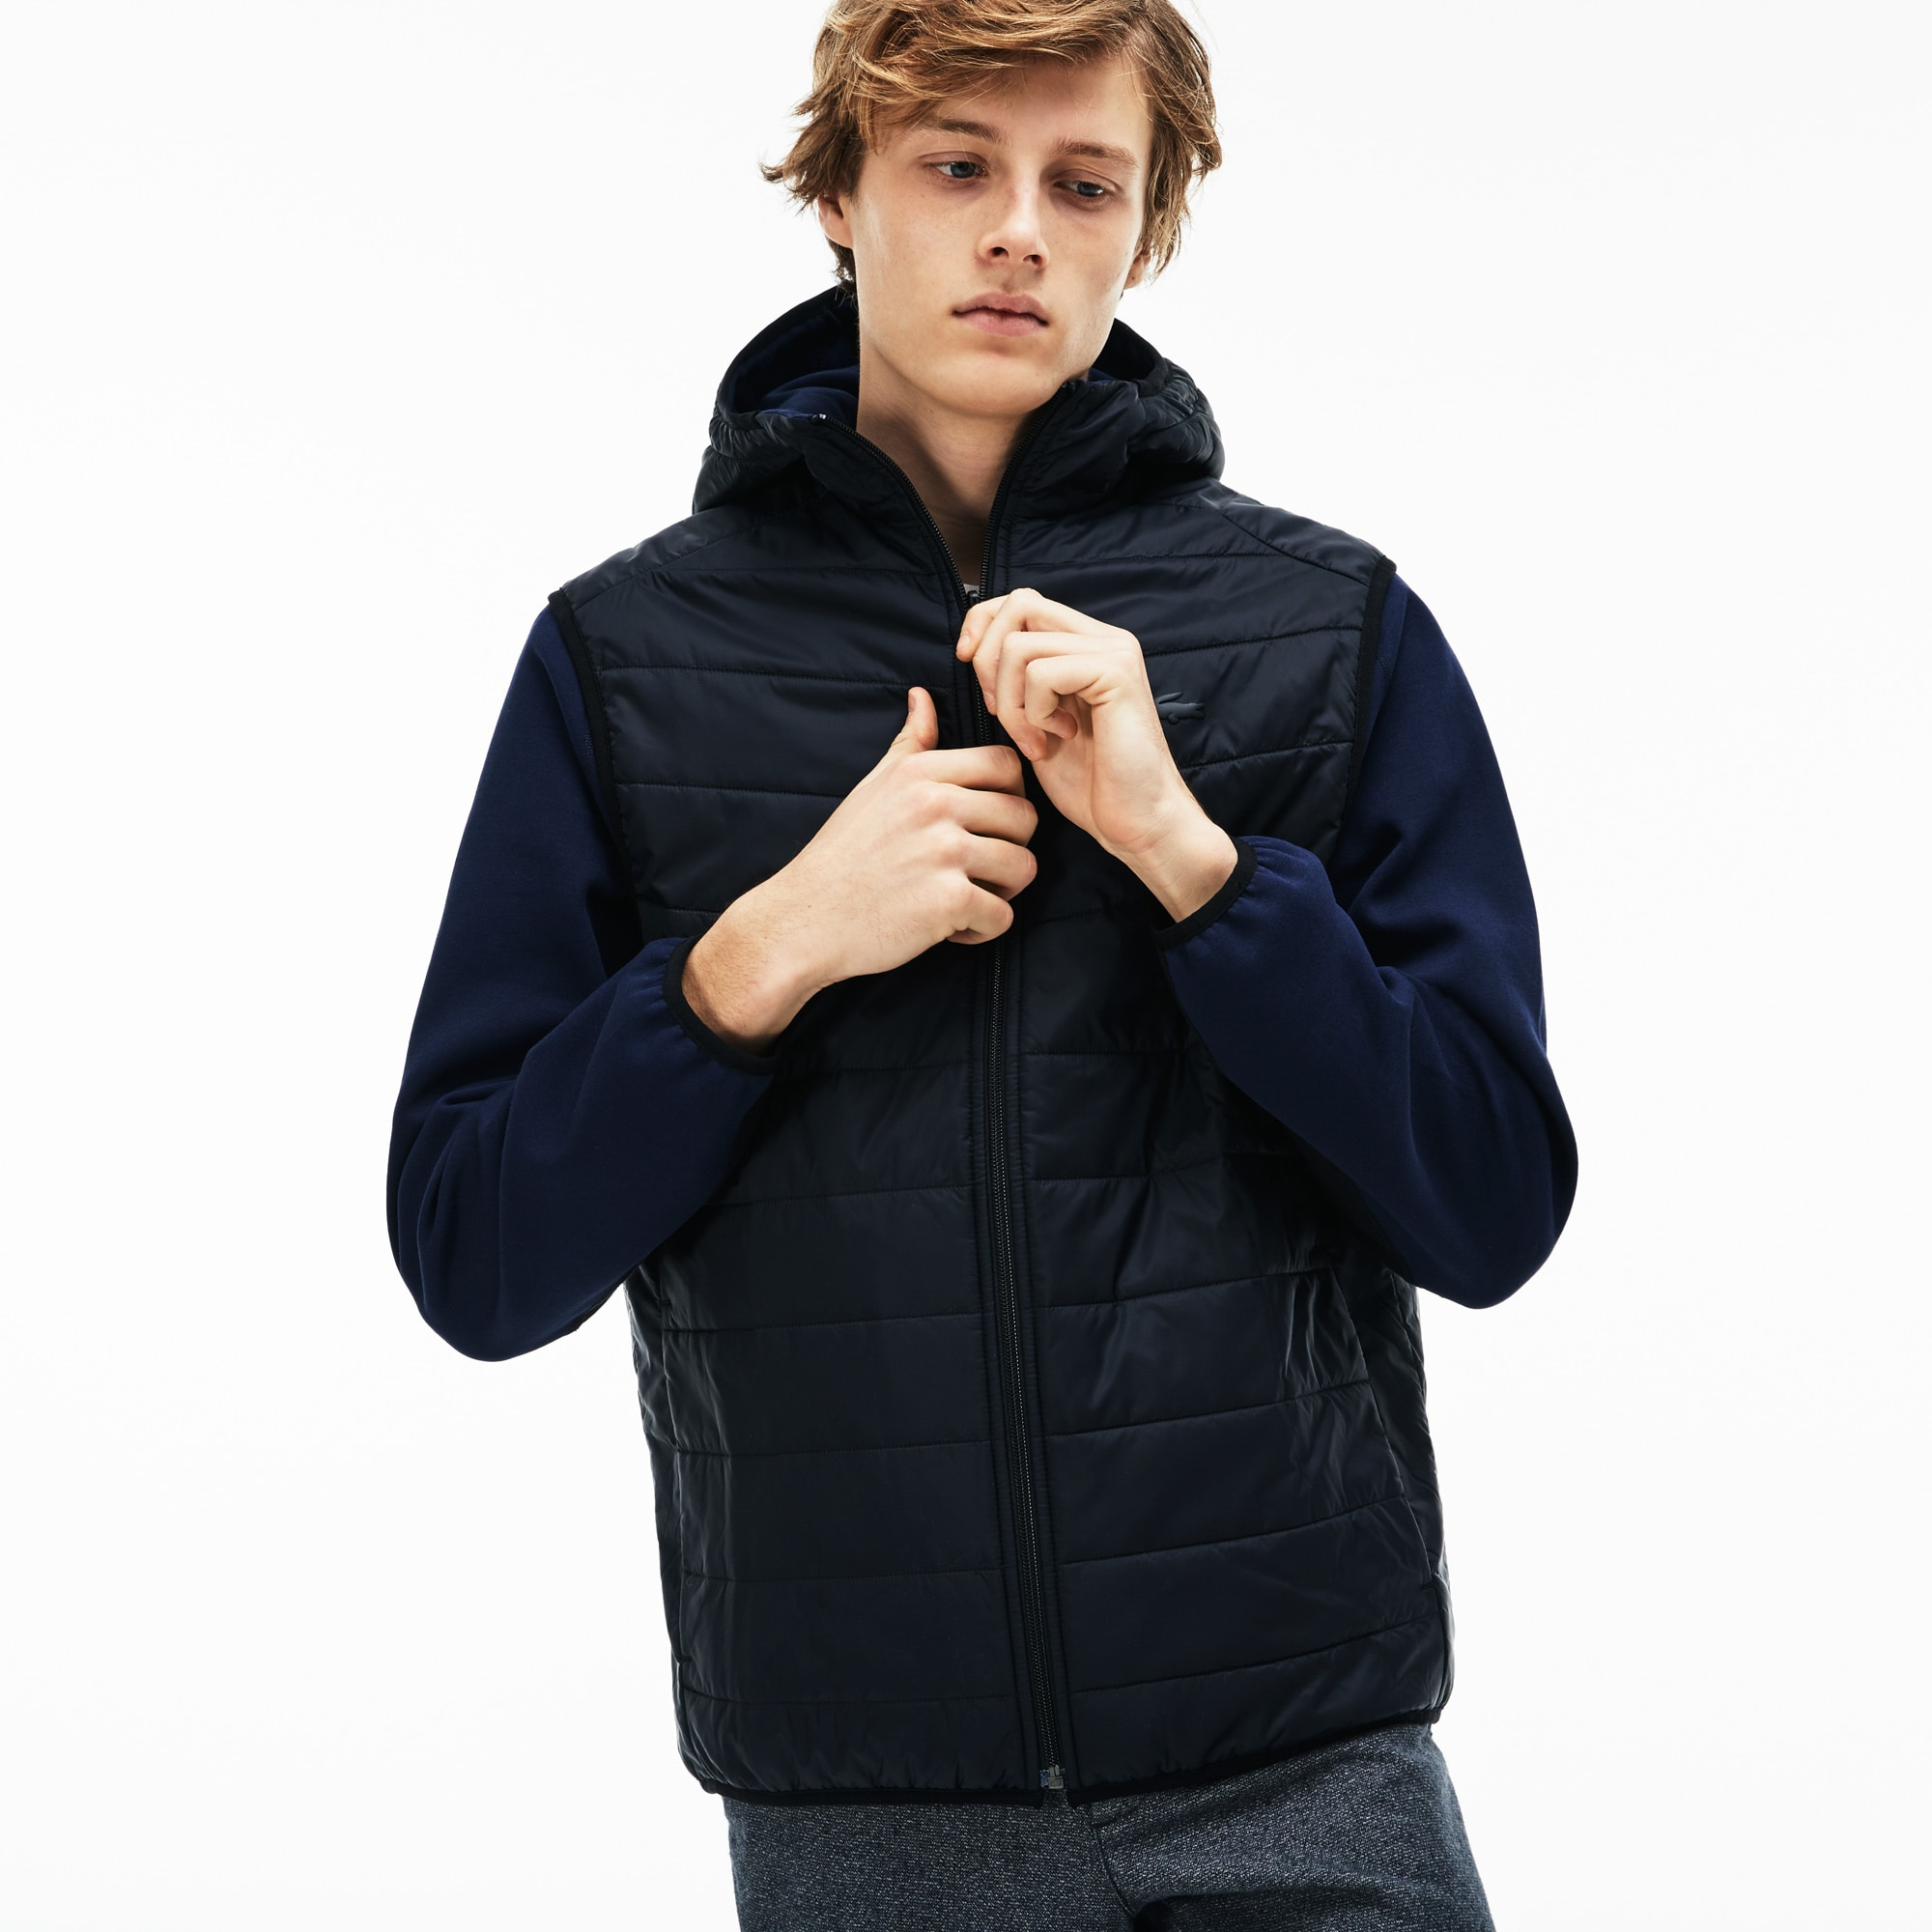 Men's Hooded Zippered Sweatshirt In Two-Tone Quilted Jersey